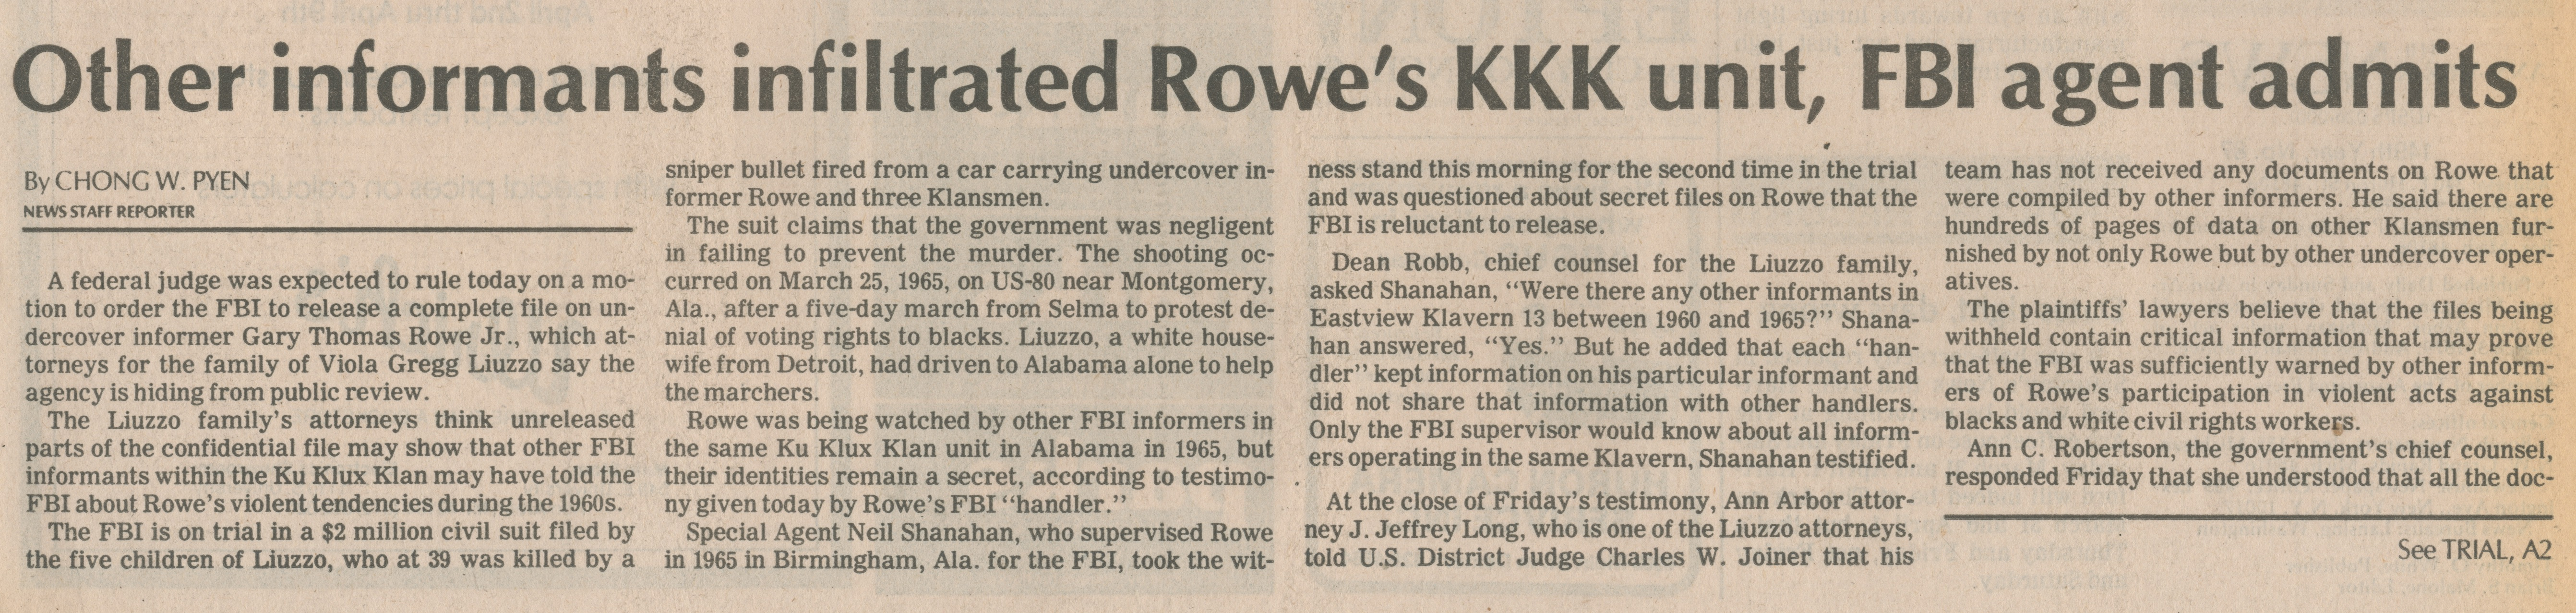 Other Informants Infiltrated Rowe's KKK Unit, FBI Agent Admits image